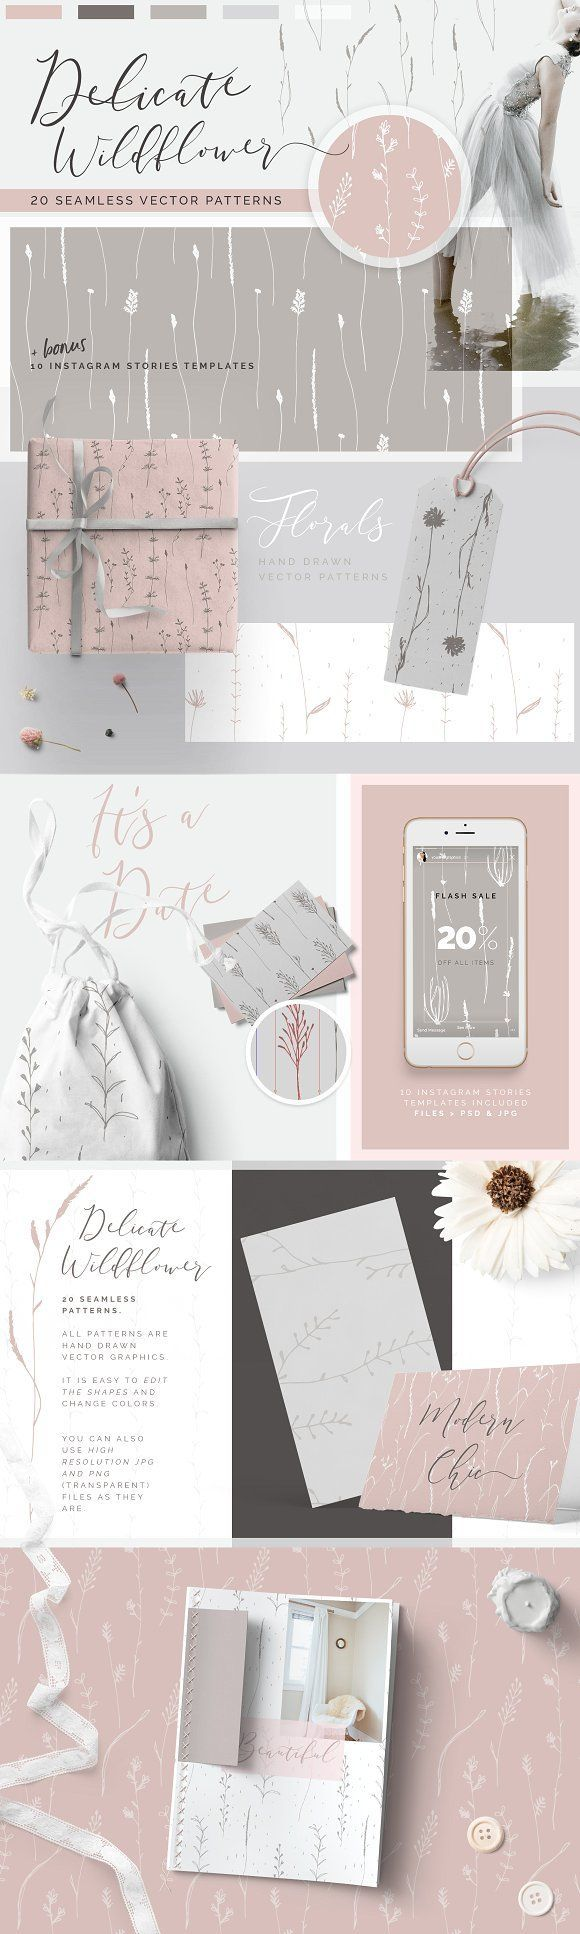 Wildflower Patterns + Templates Set by Youandigraphics on @creativemarket